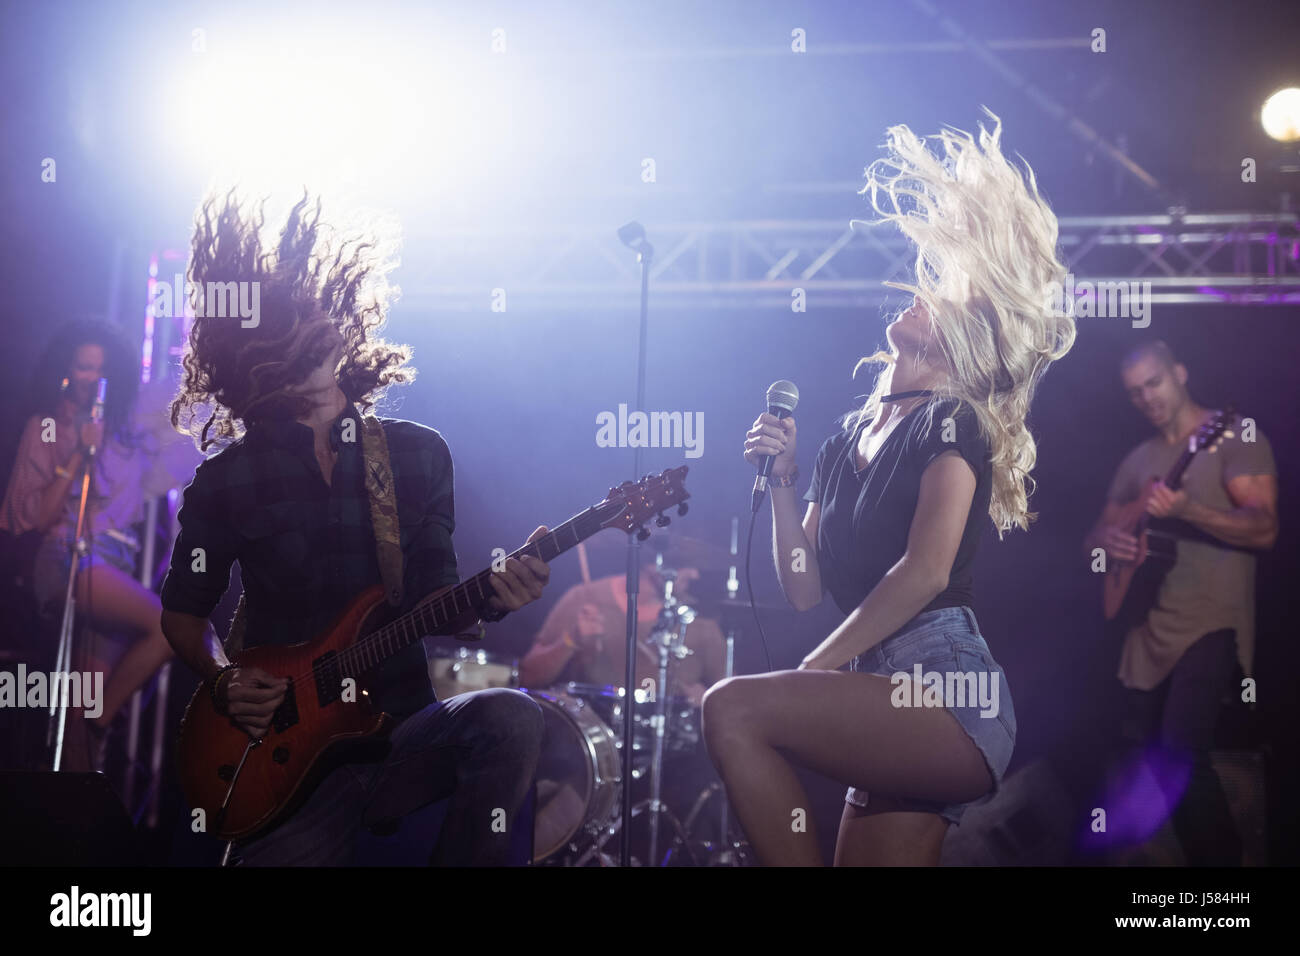 Female singer and male guitarist with tousled hair performing together on stage at nightclub - Stock Image